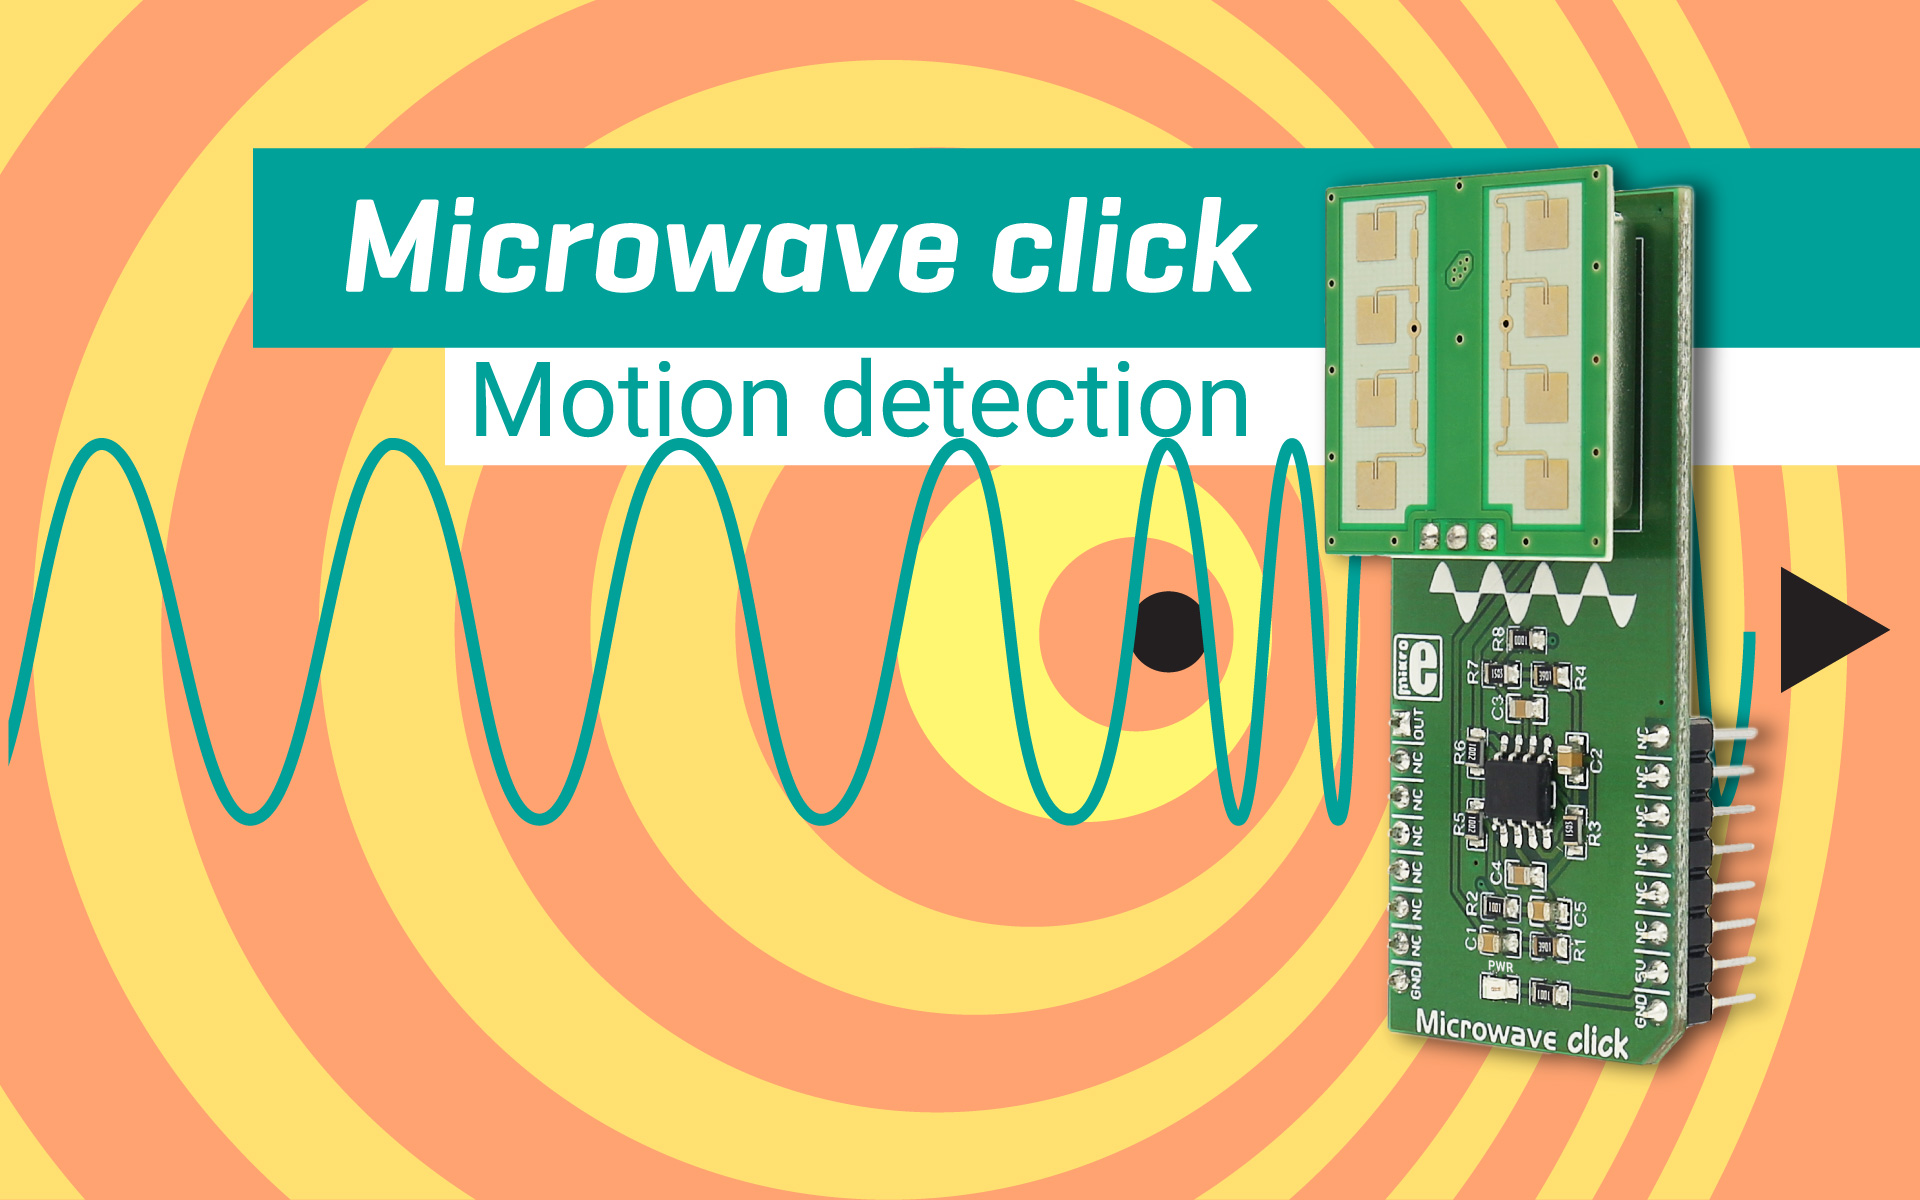 Microwave click - detecting movement